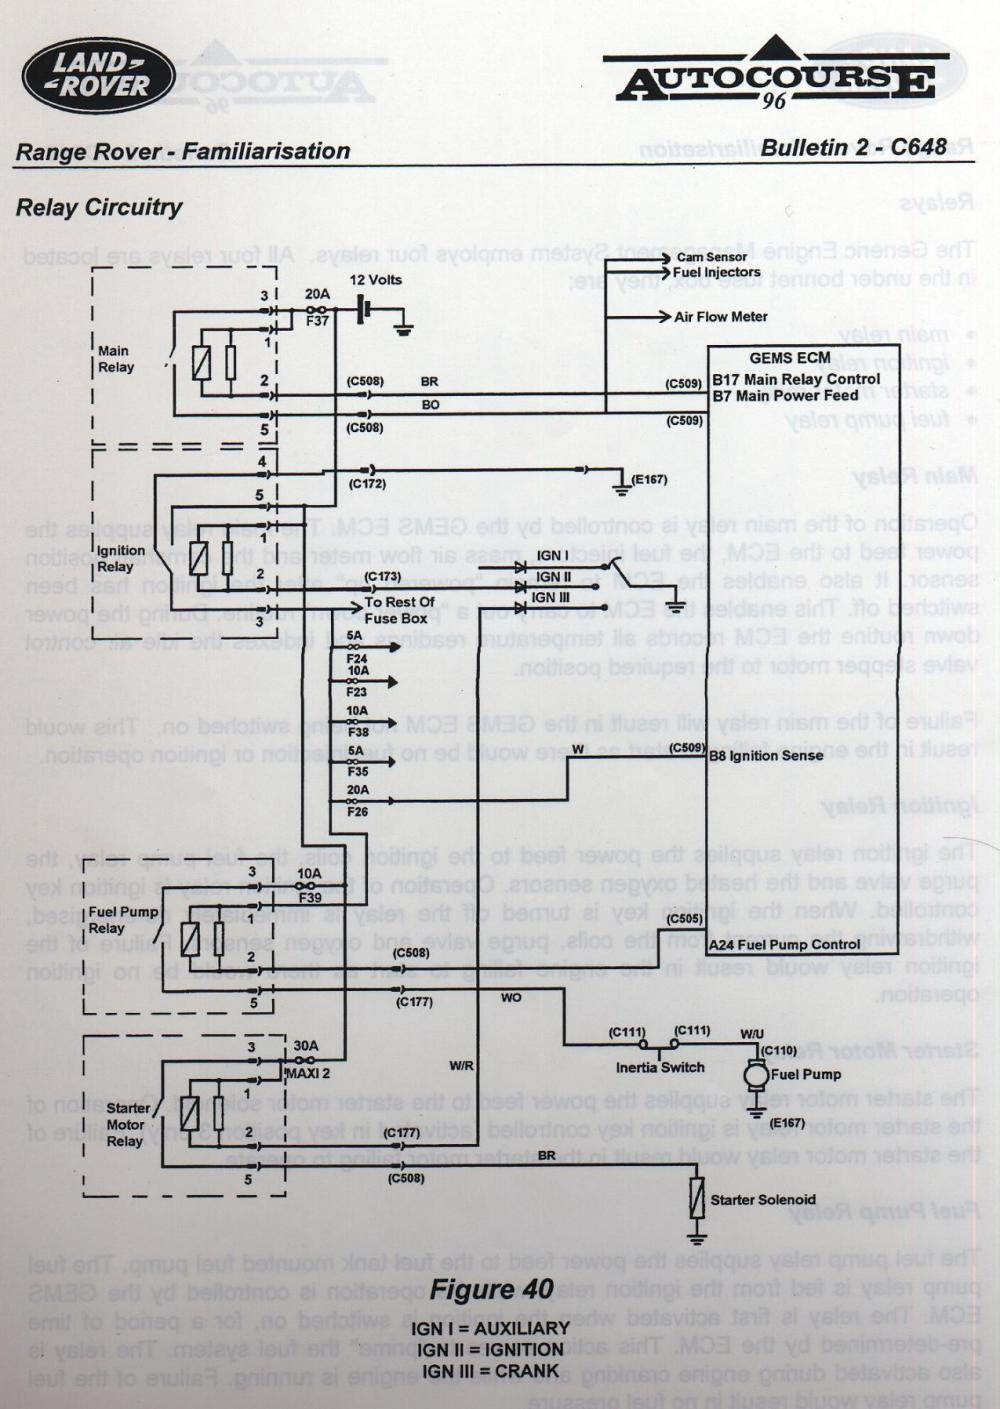 medium resolution of weird fuse box problem p38 page 2 landyzone land rover forum range rover p38 wiring diagram